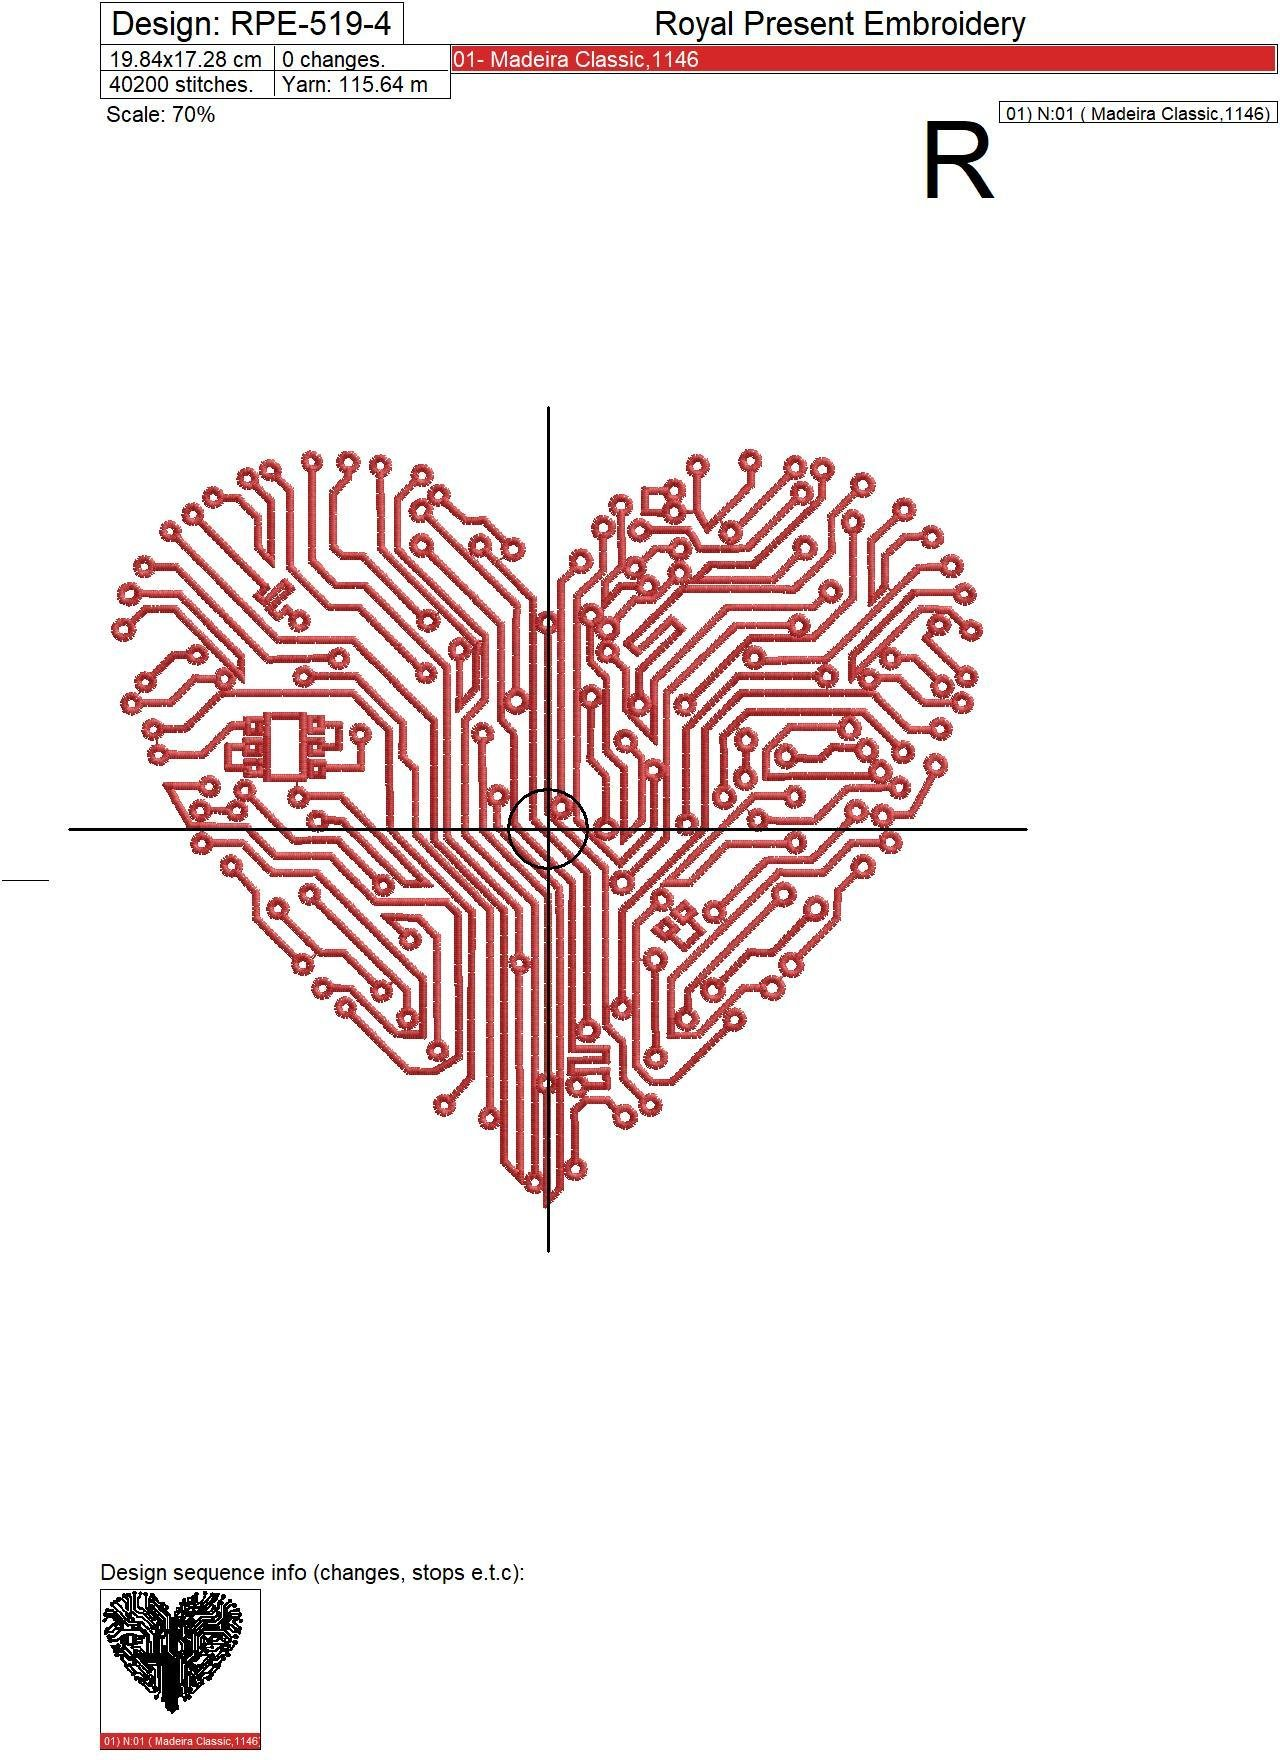 Machine Embroidery Design Computer heart - 5 sizes